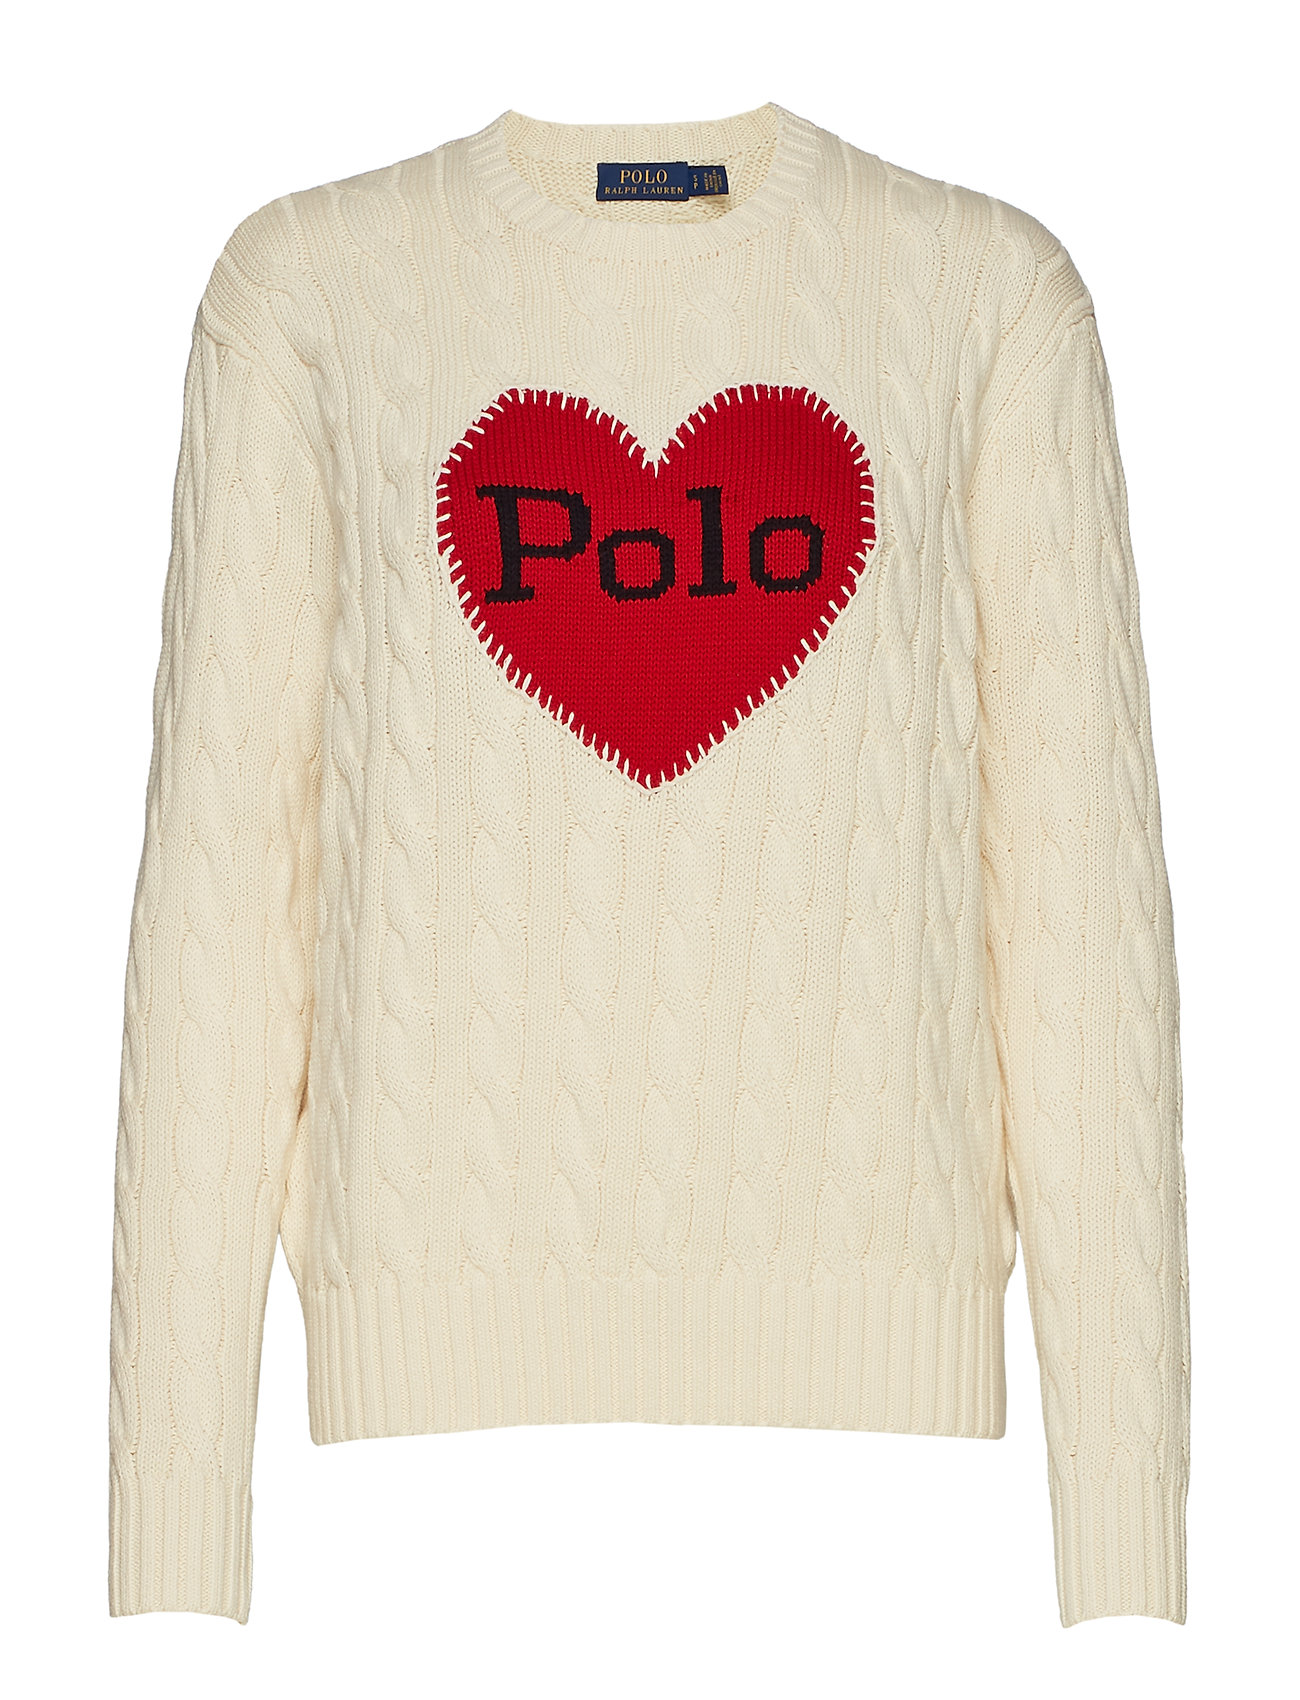 Polo Ralph Lauren Polo-Heart Cable-Knit Sweater